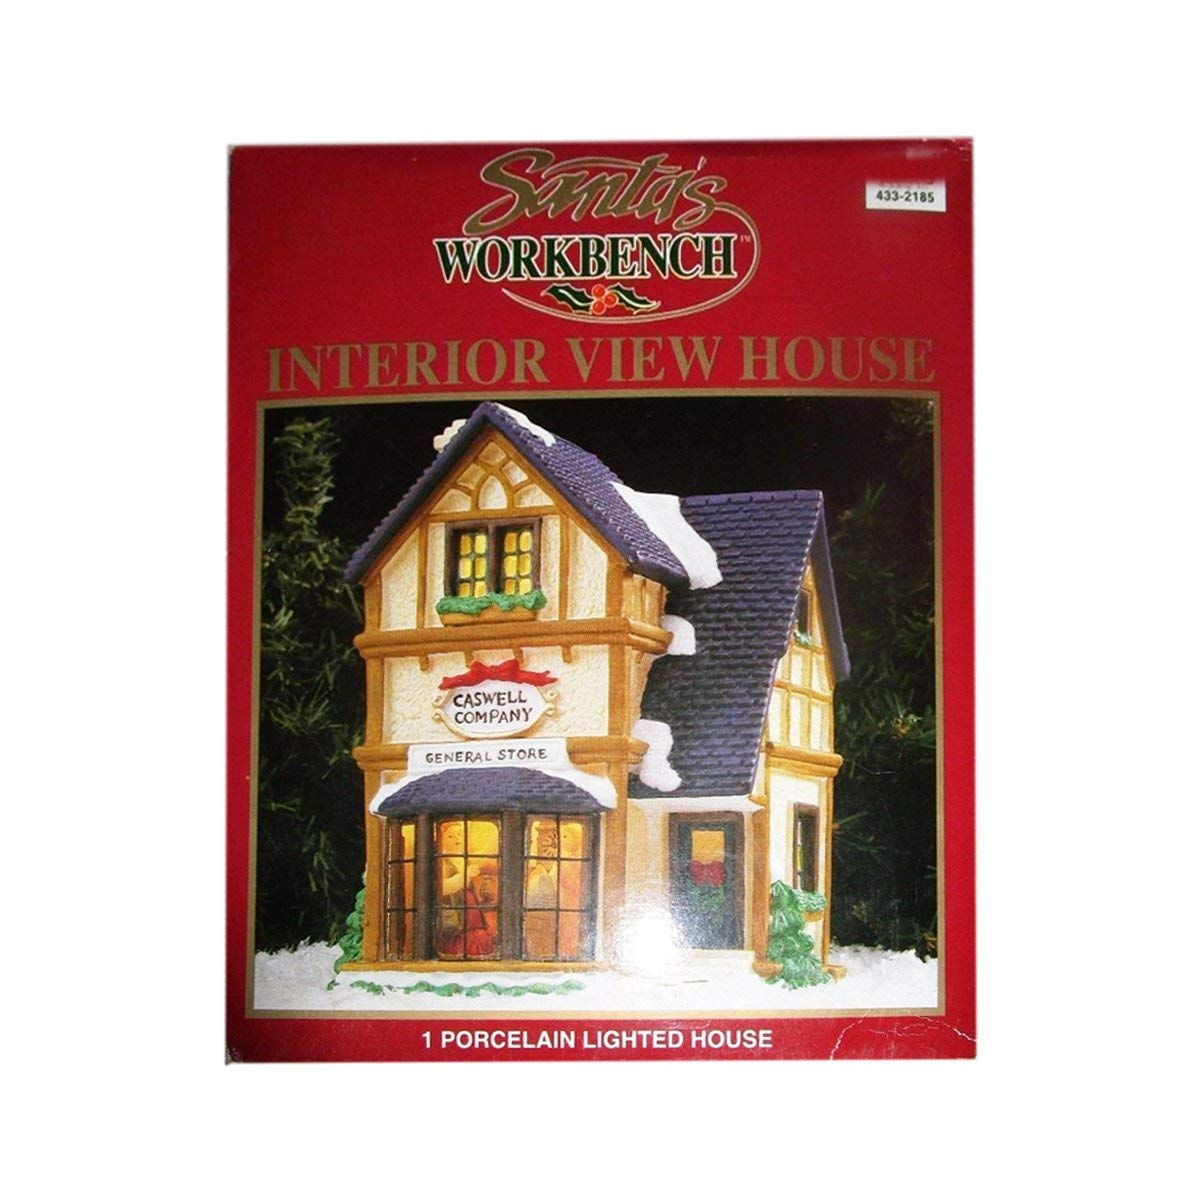 Santa's Workbench 1998 Interior View House Caswell Company General Store 433-2185